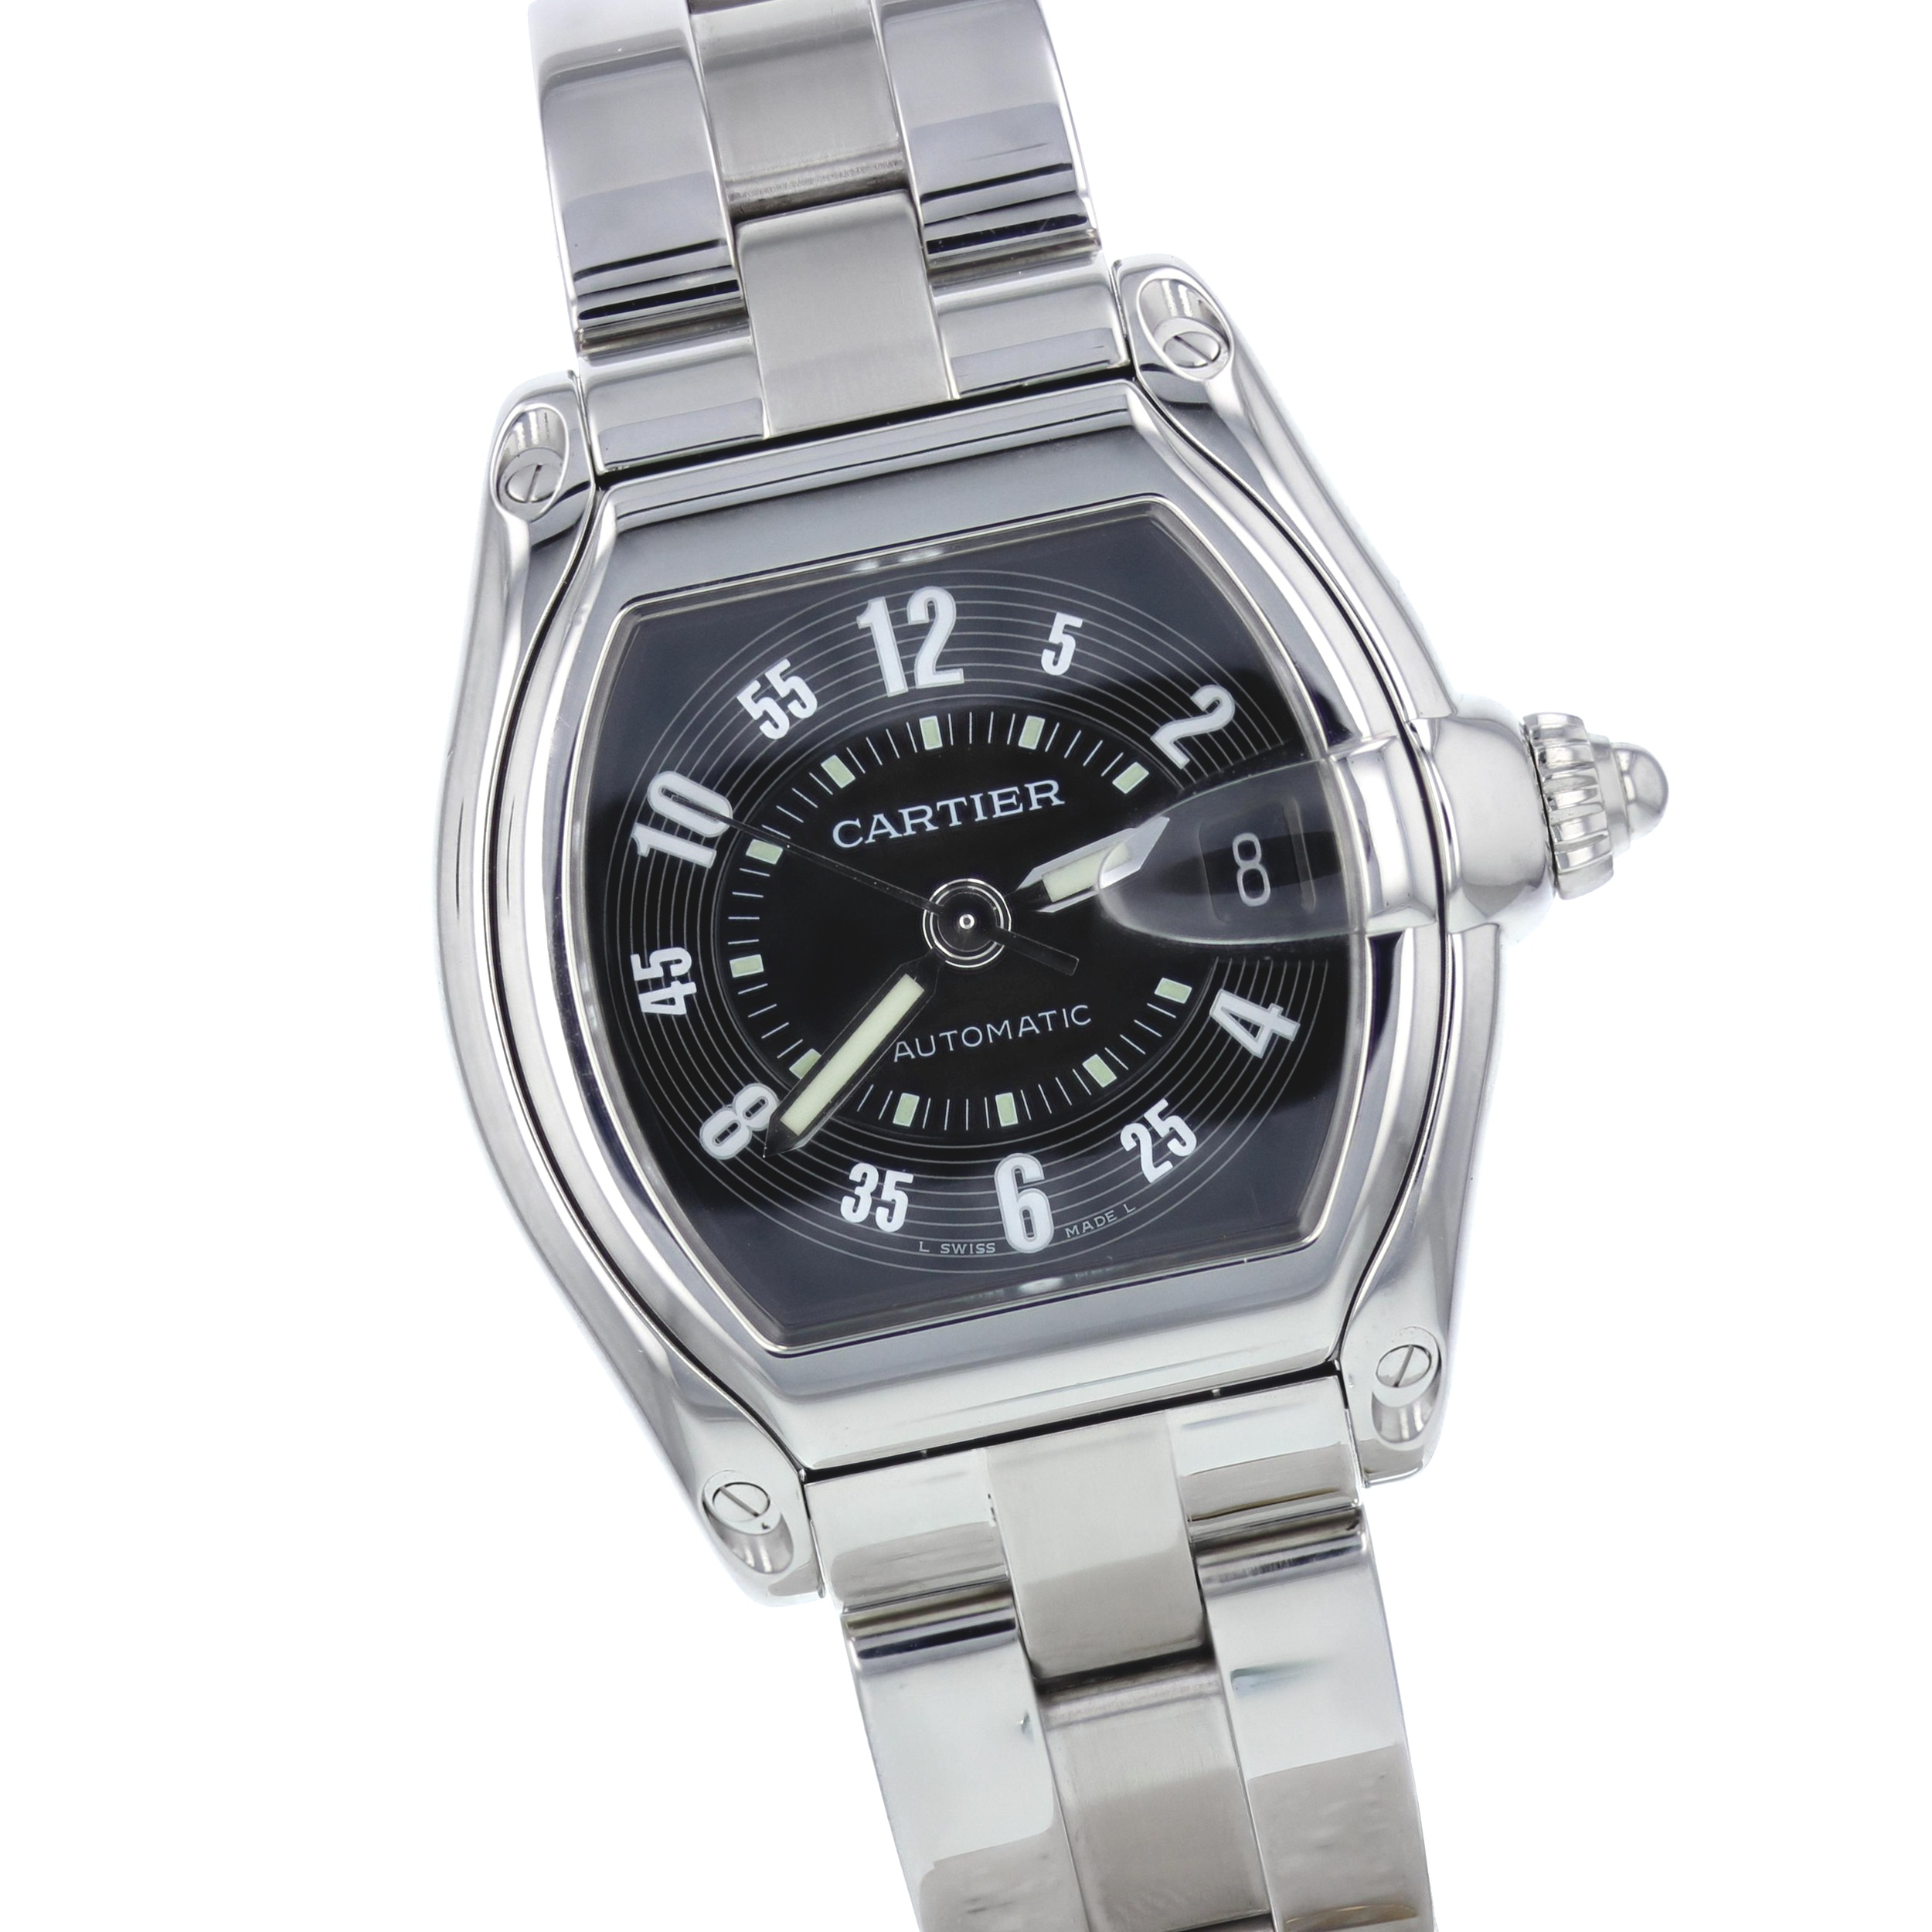 Cartier stainless steel Roadster automatic